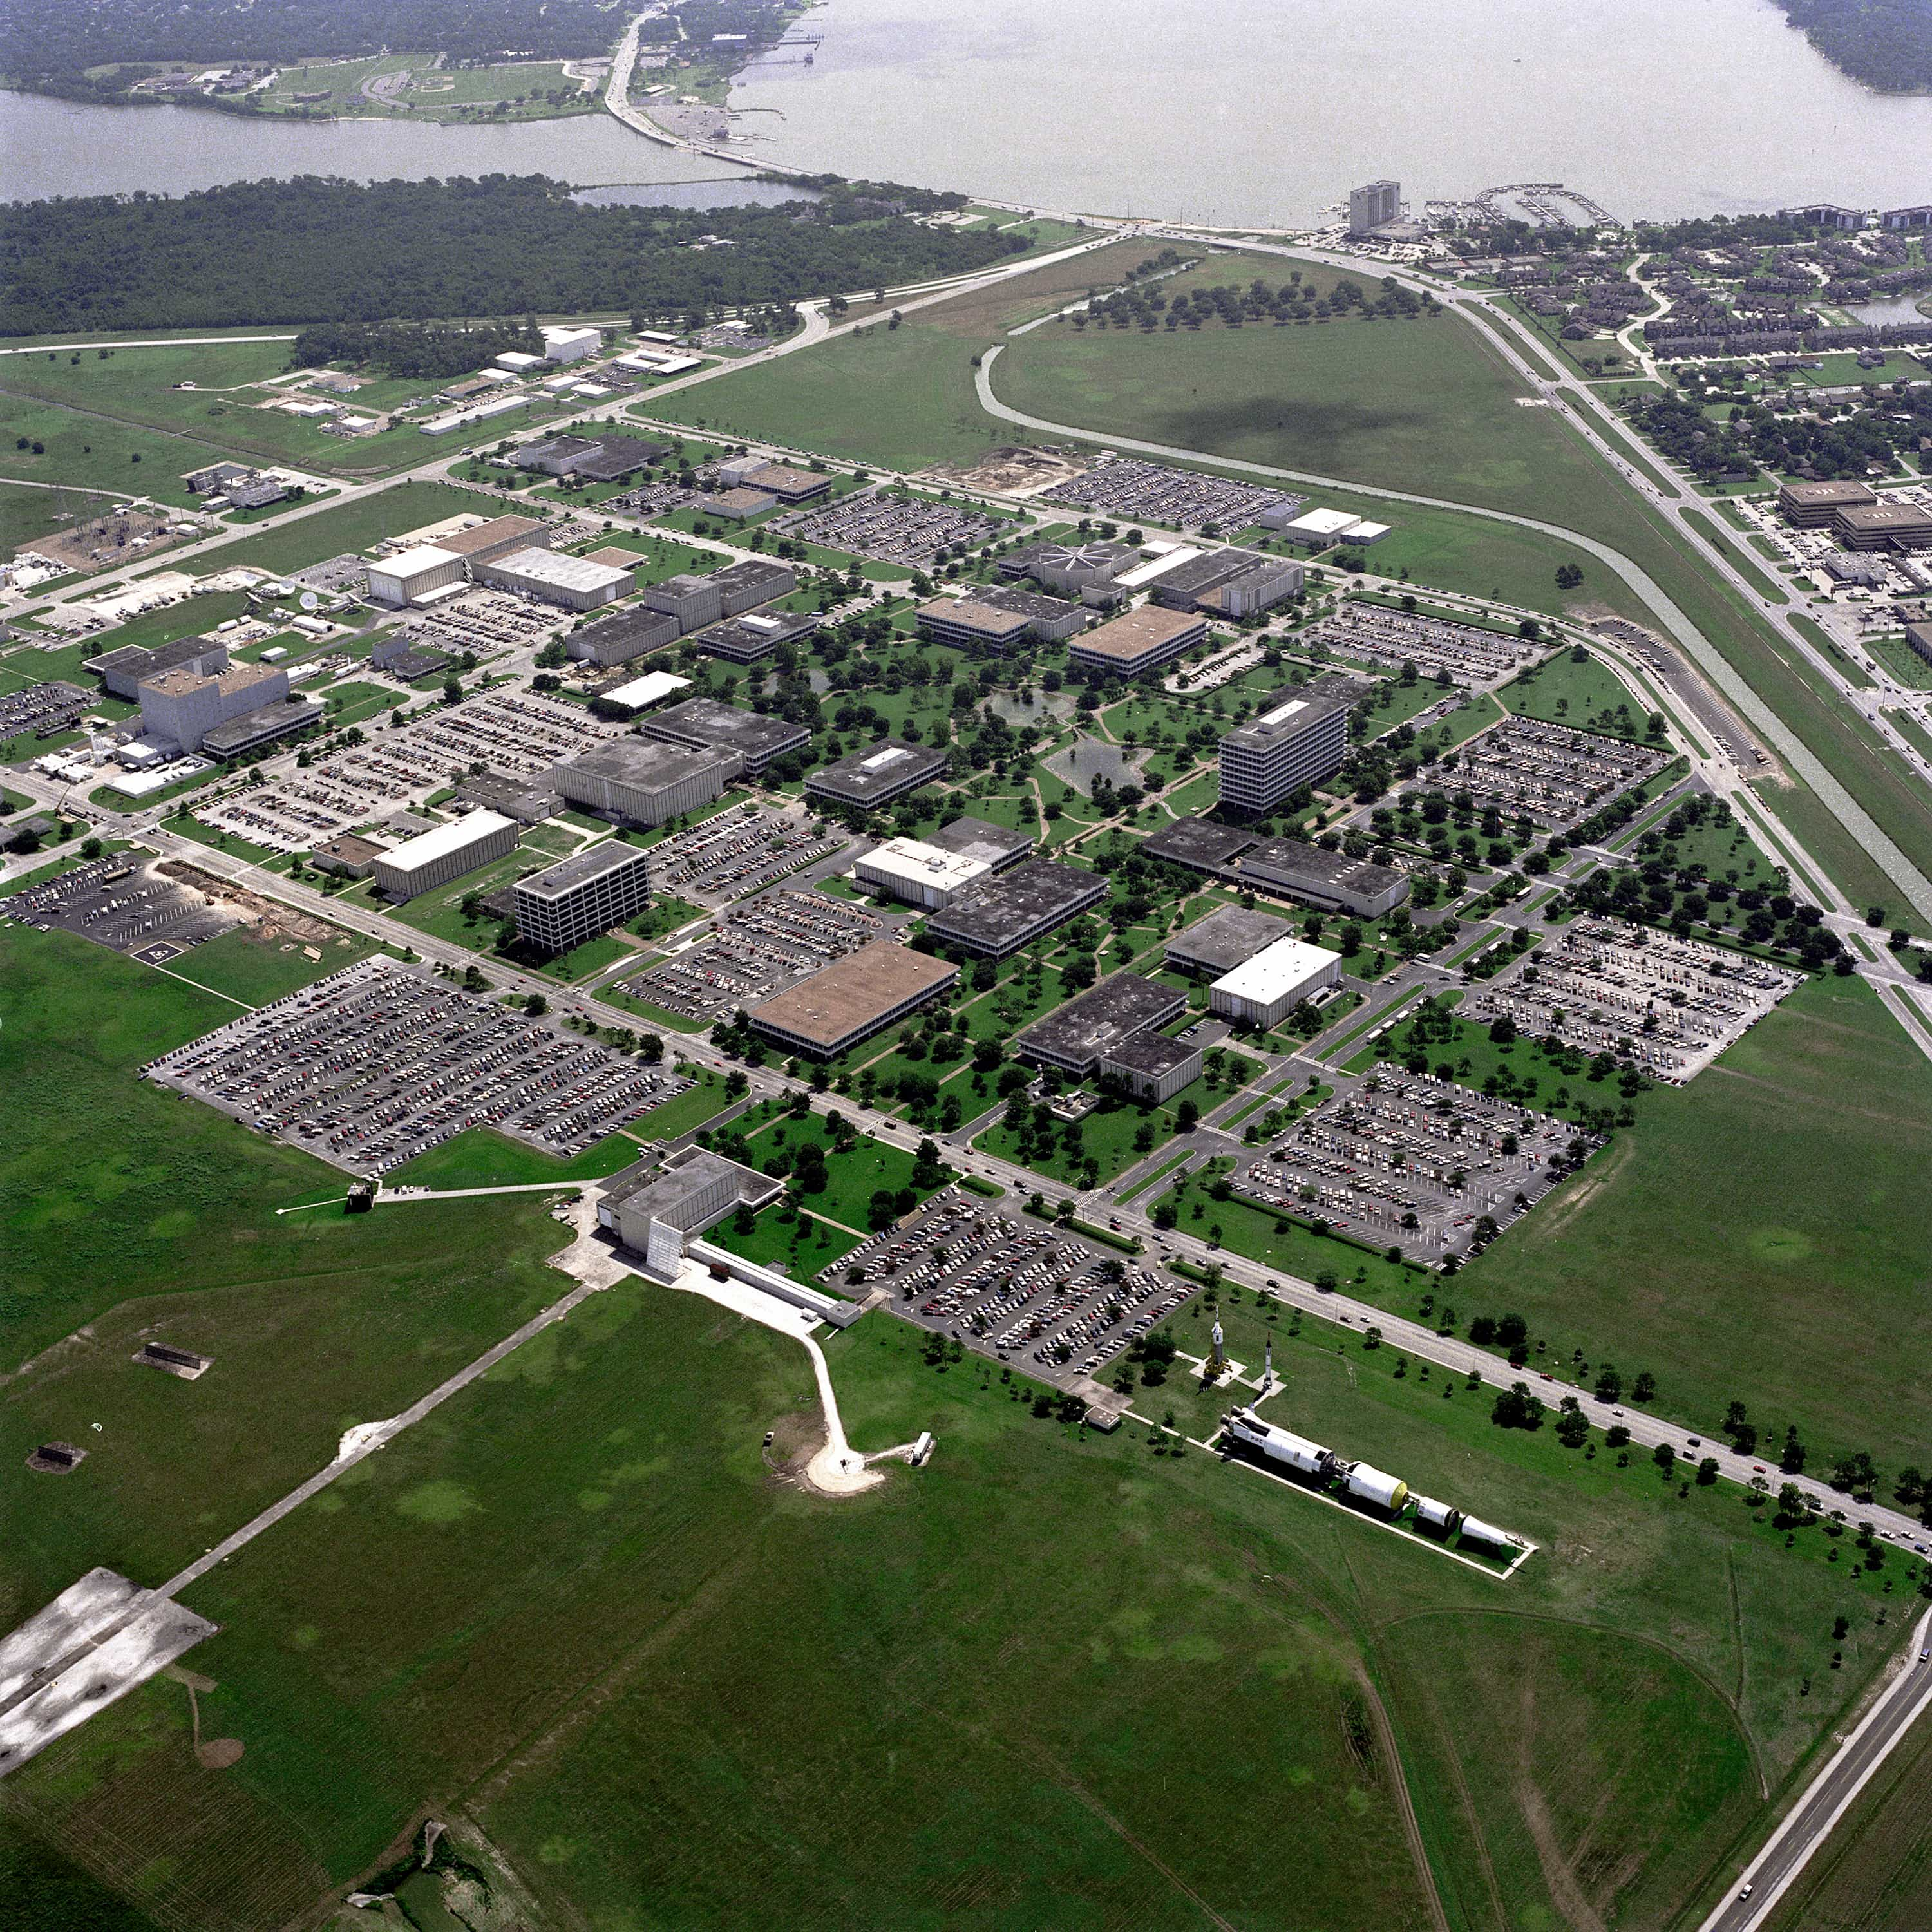 Aerial_View_of_the_Johnson_Space_Center_-_GPN-2000-001112